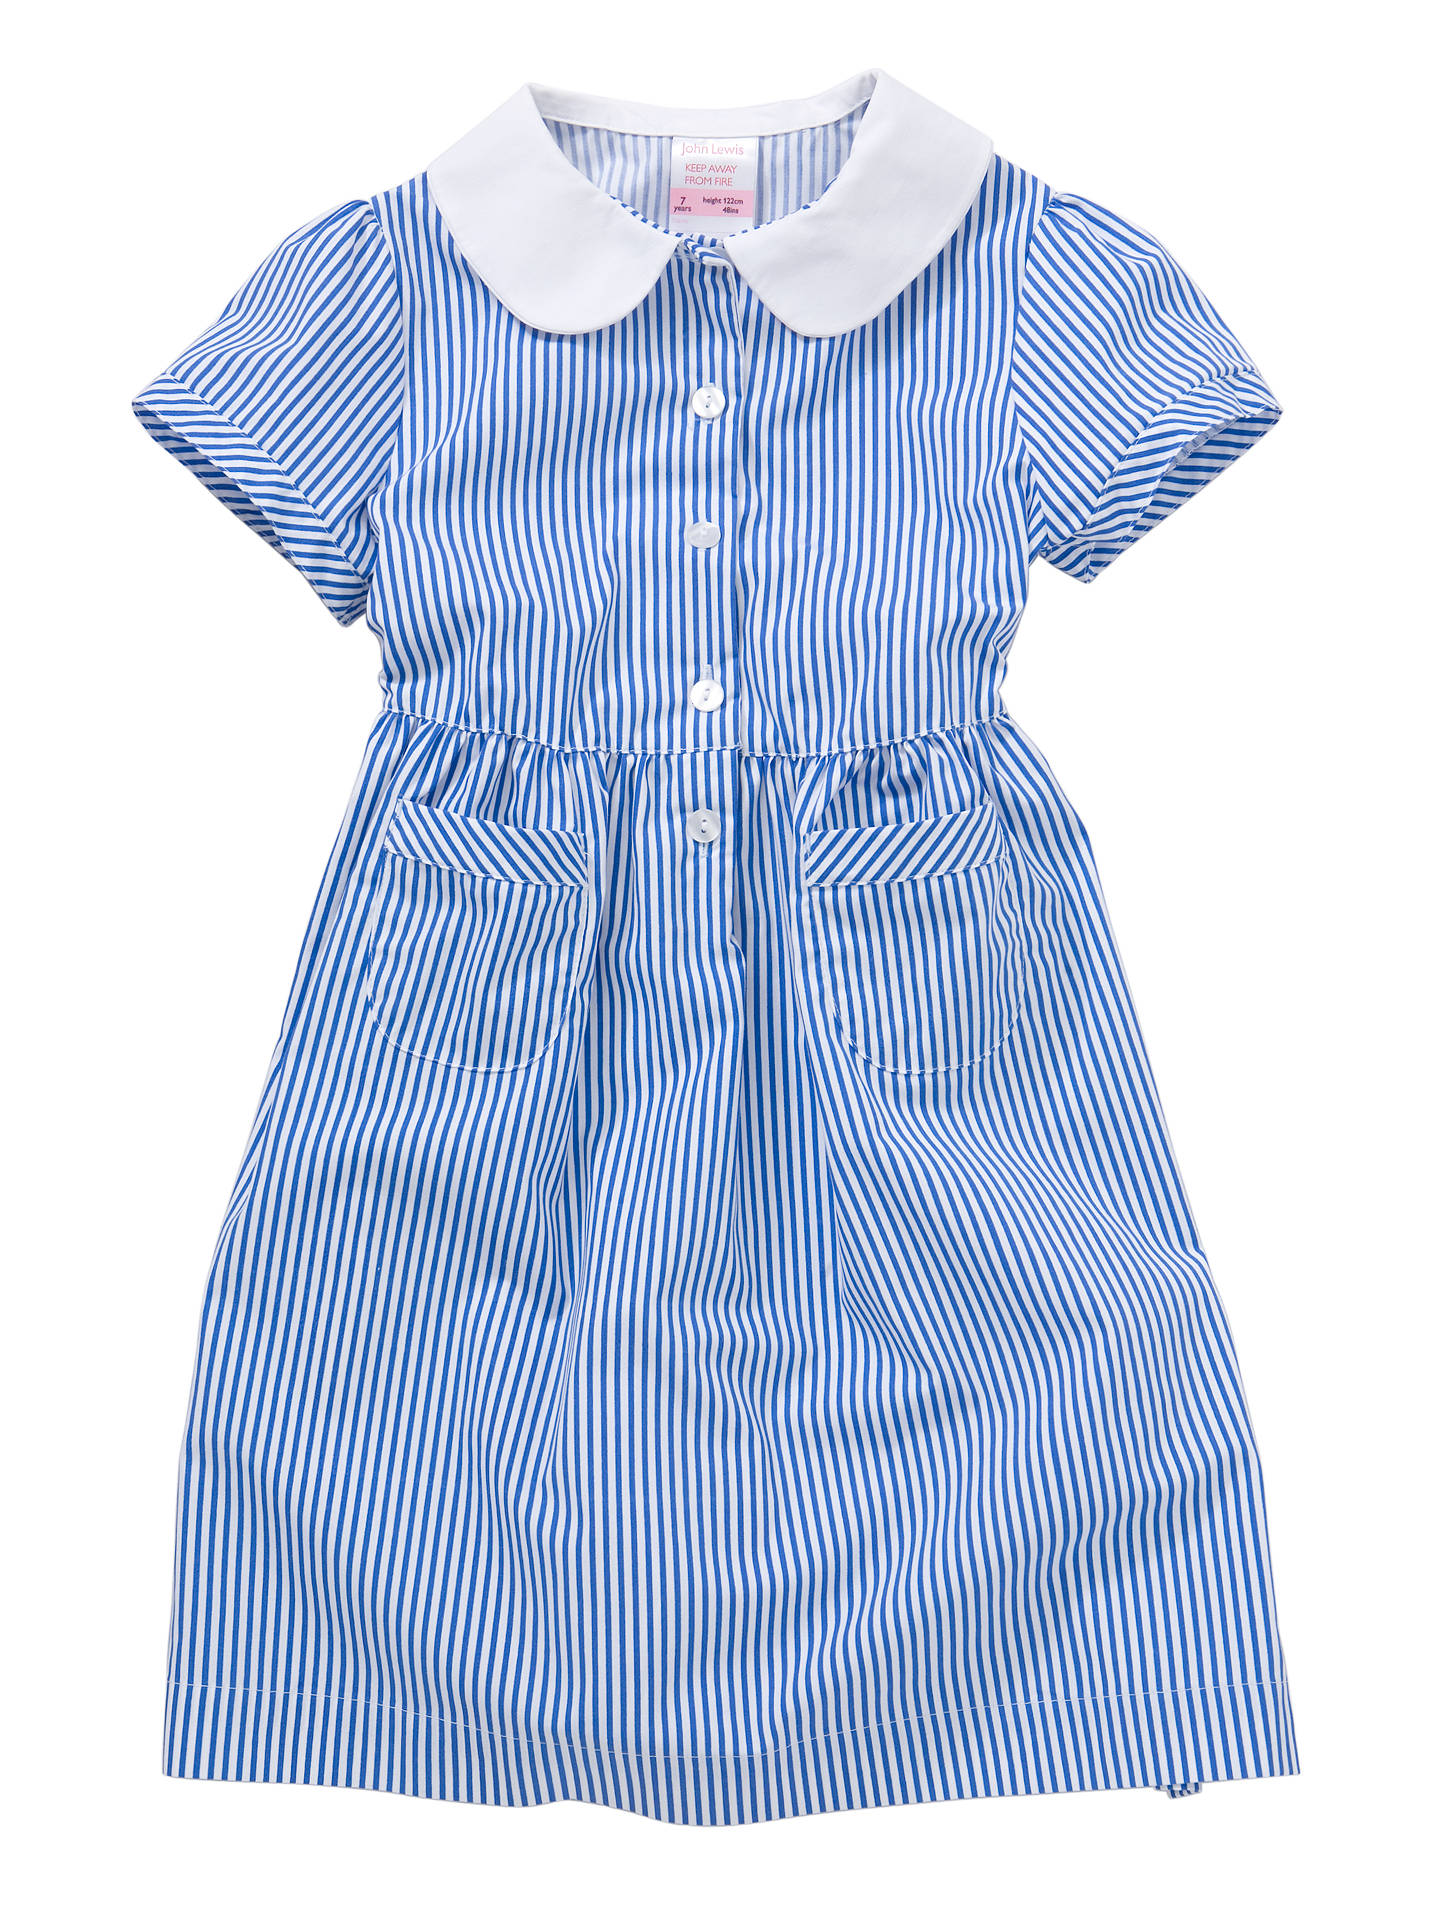 199f5a0d5b785 Buy John Lewis School Striped Summer Dress, Blue, 5 years Online at  johnlewis.